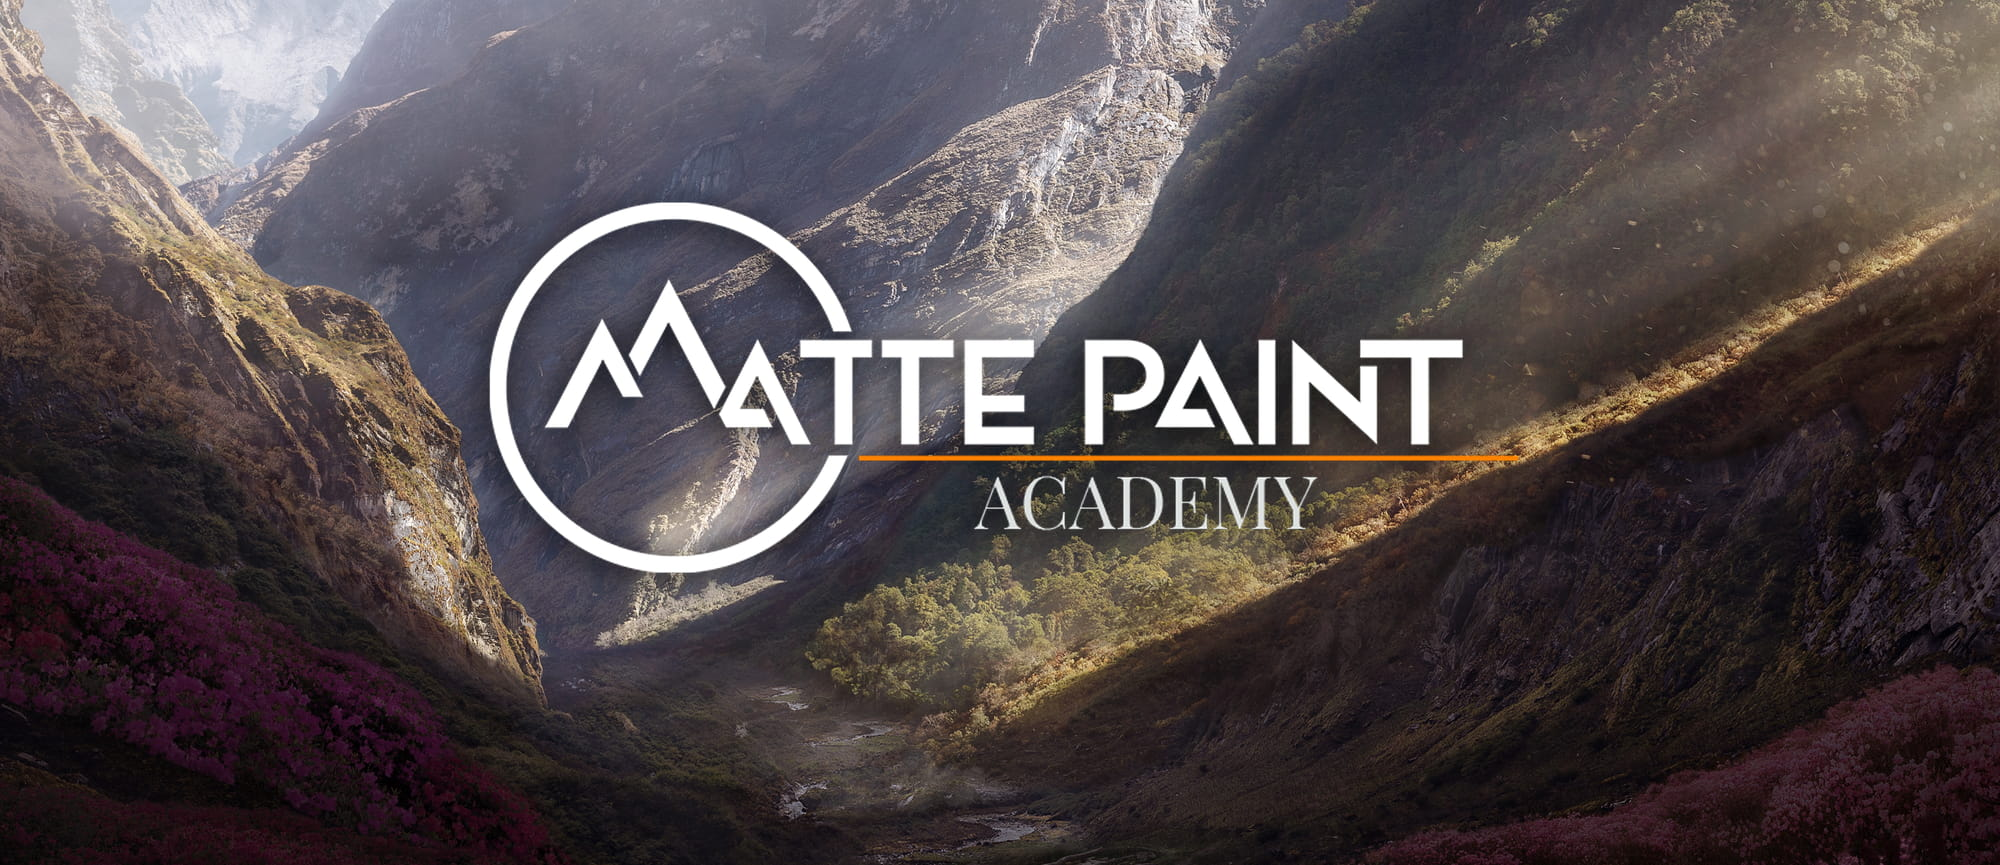 """""""Perspective Repeat"""" with Conrad Allan and the MattePaint Academy"""